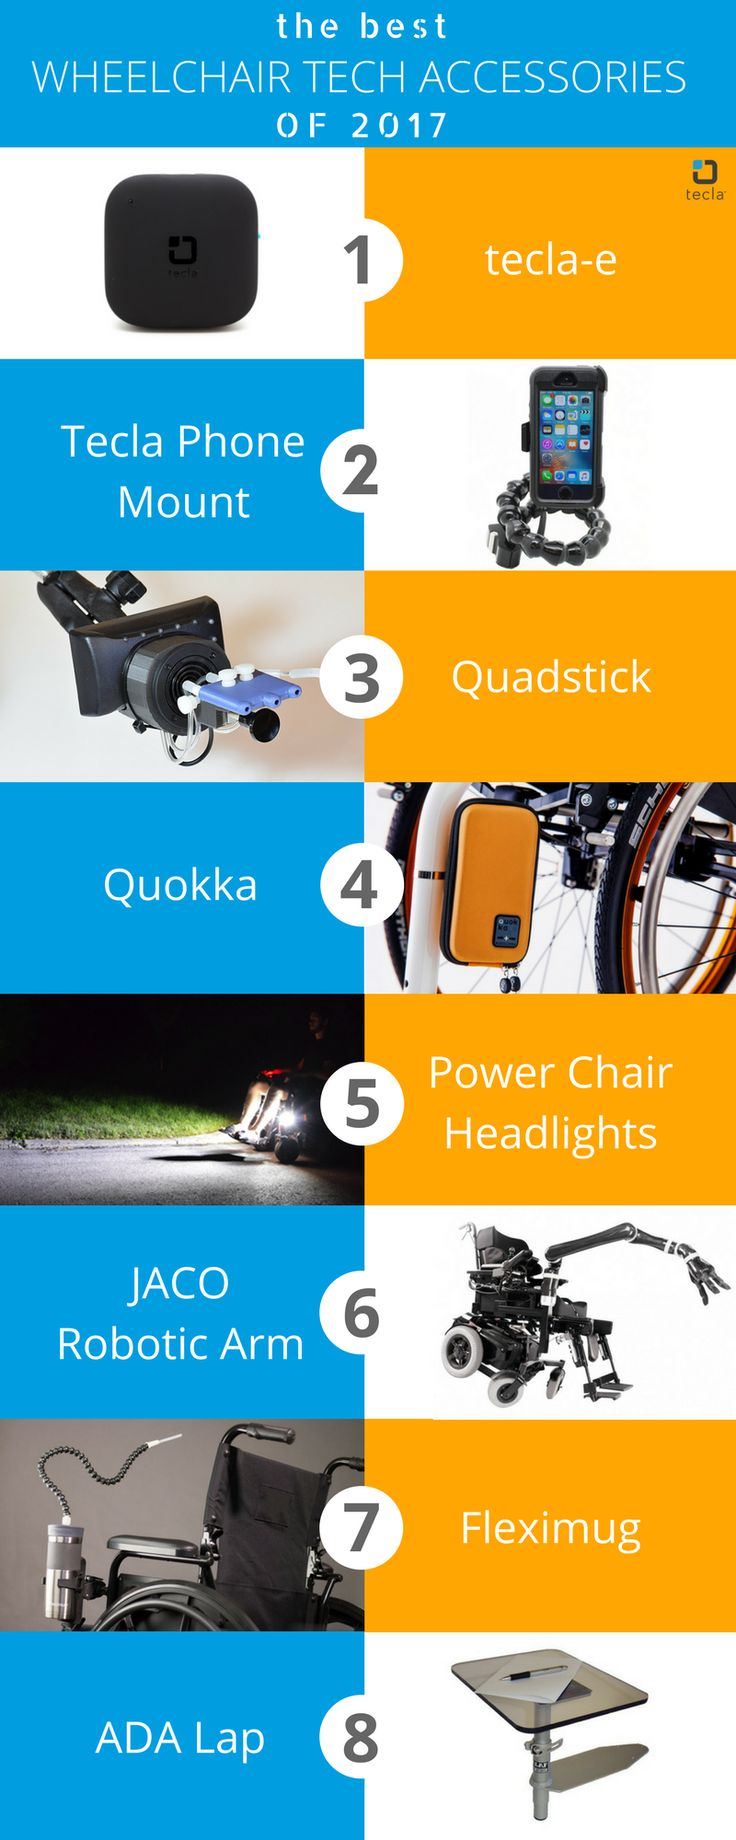 Cool wheelchair accessories and tools for quadriplegics including tecla-e, iPhone mount, quadstick, quokka, power chair headlights, JACO robotic assistive arm, Fleximug and ADA wheelchair lap tray and system